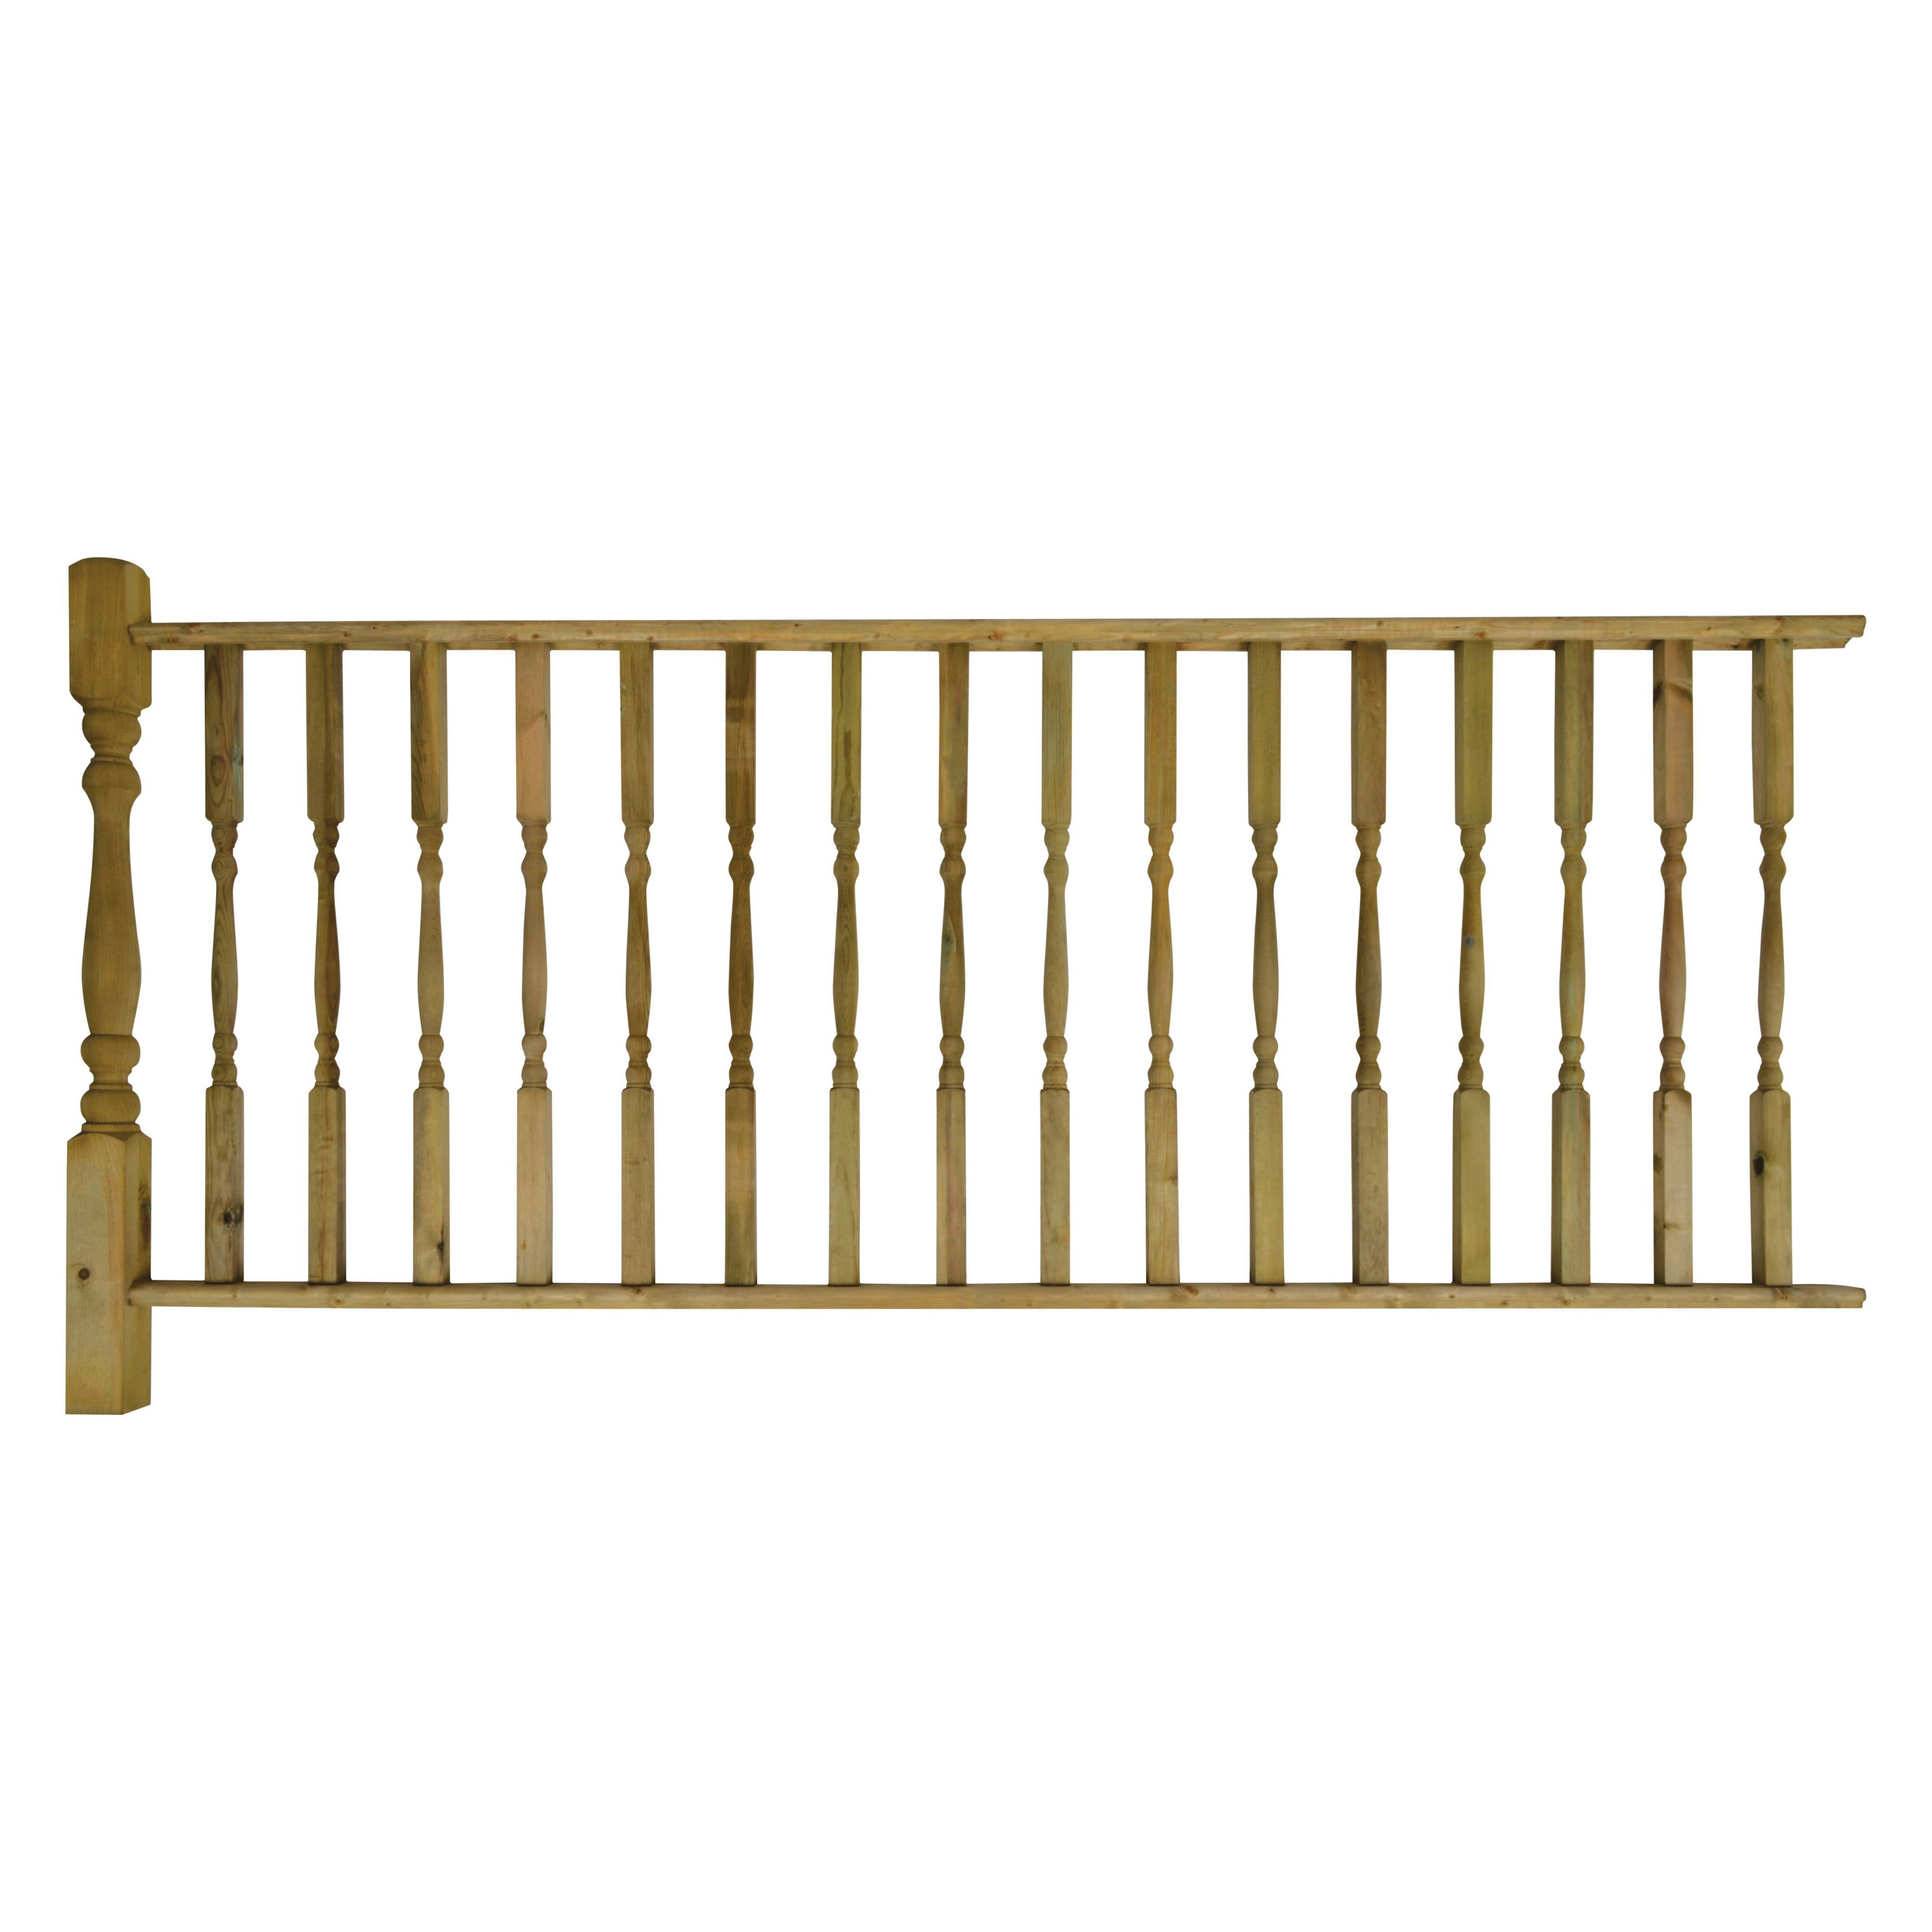 decking railing kits decking accessories decking